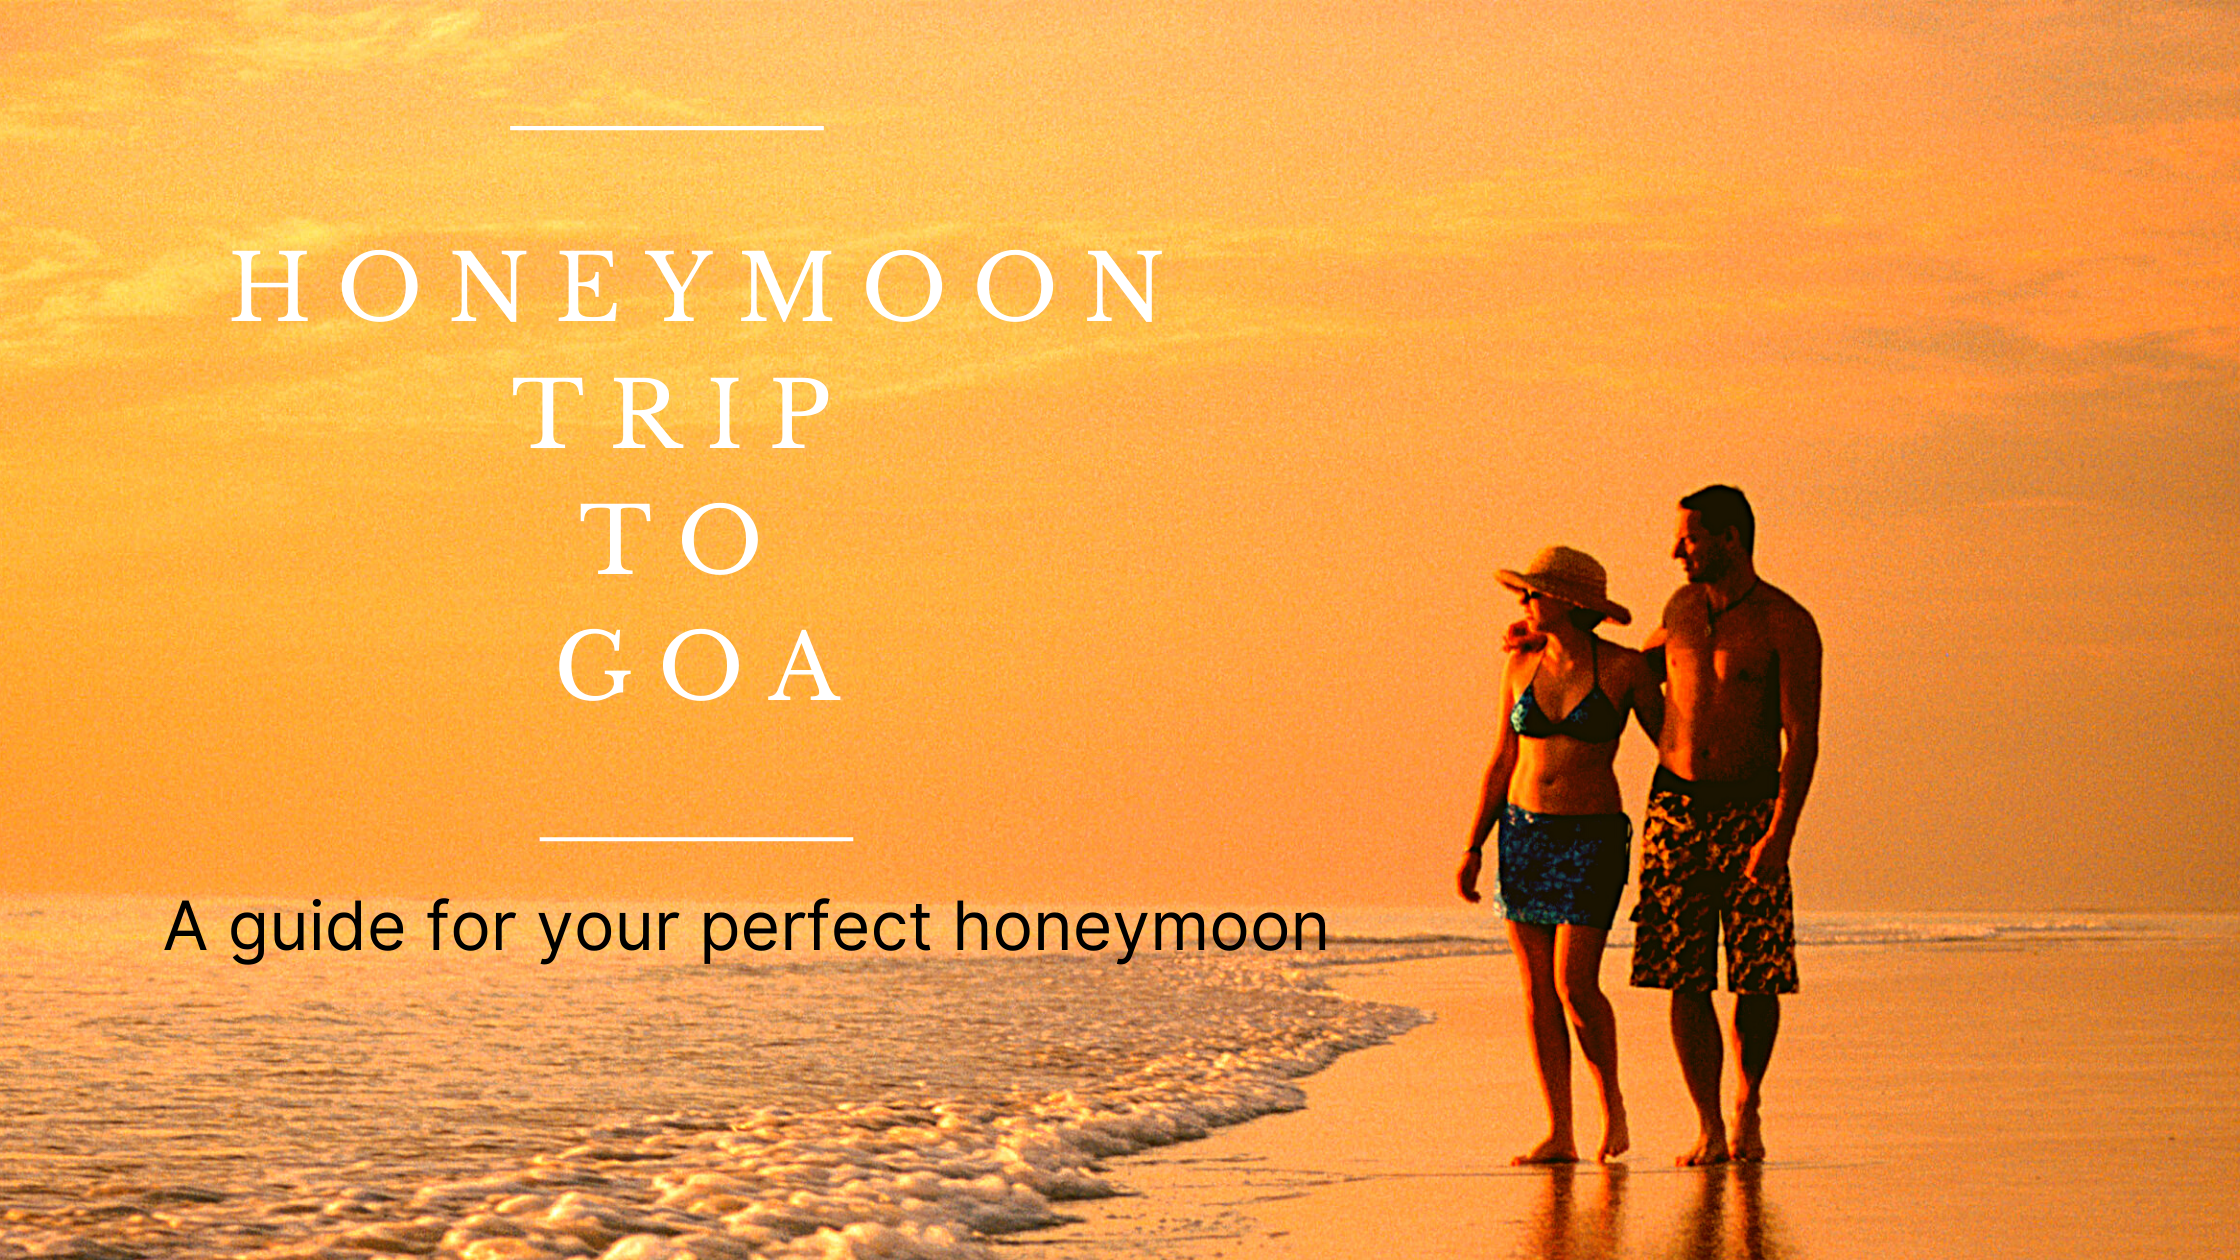 Skip to Goa with your beloved after wedding for a Honeymoon